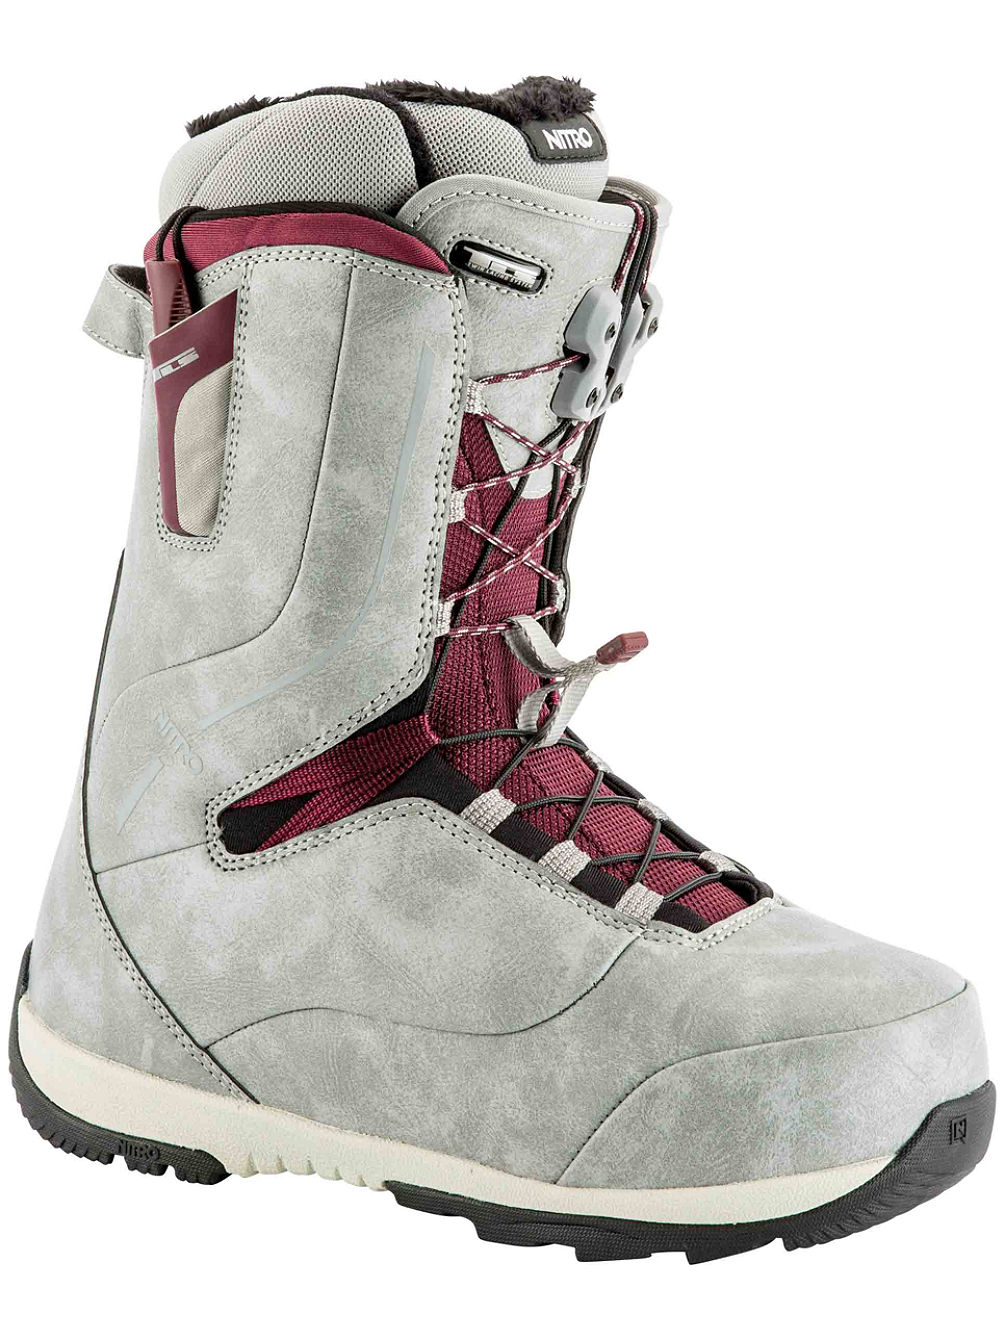 Crown Tls Snowboardboots